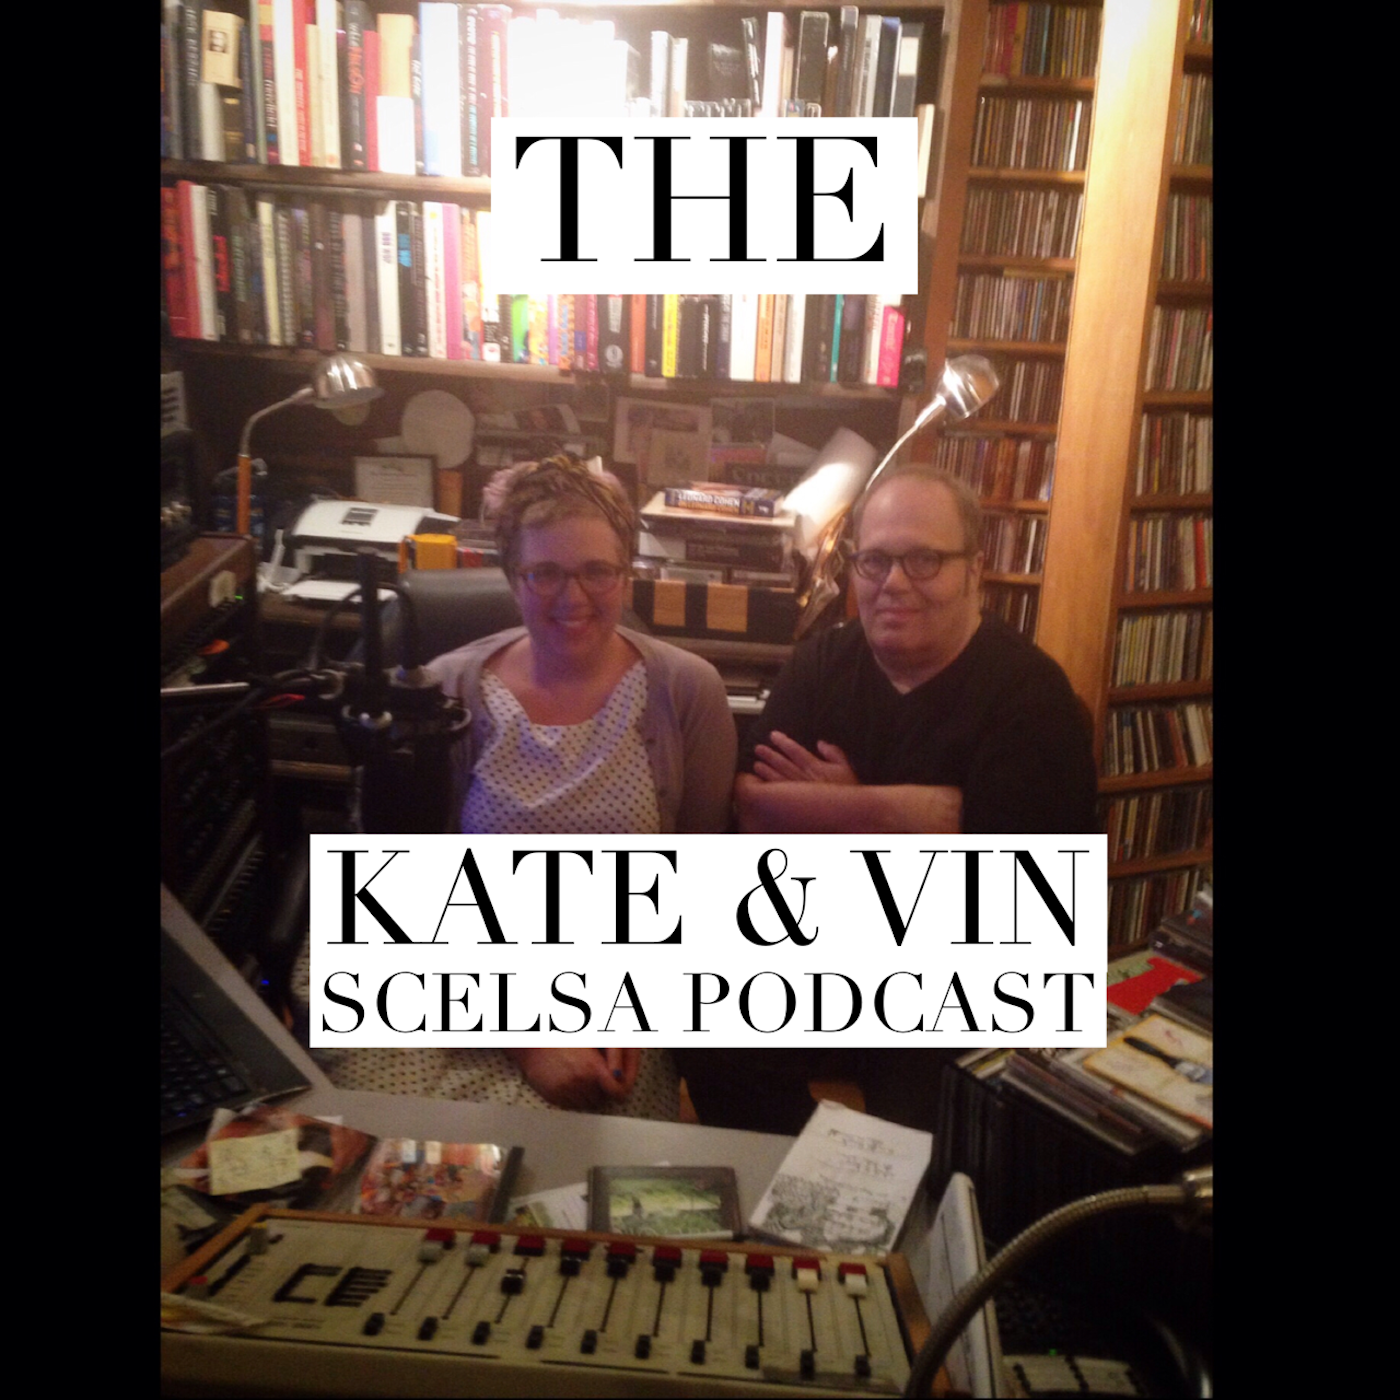 The Kate and Vin Scelsa Podcast